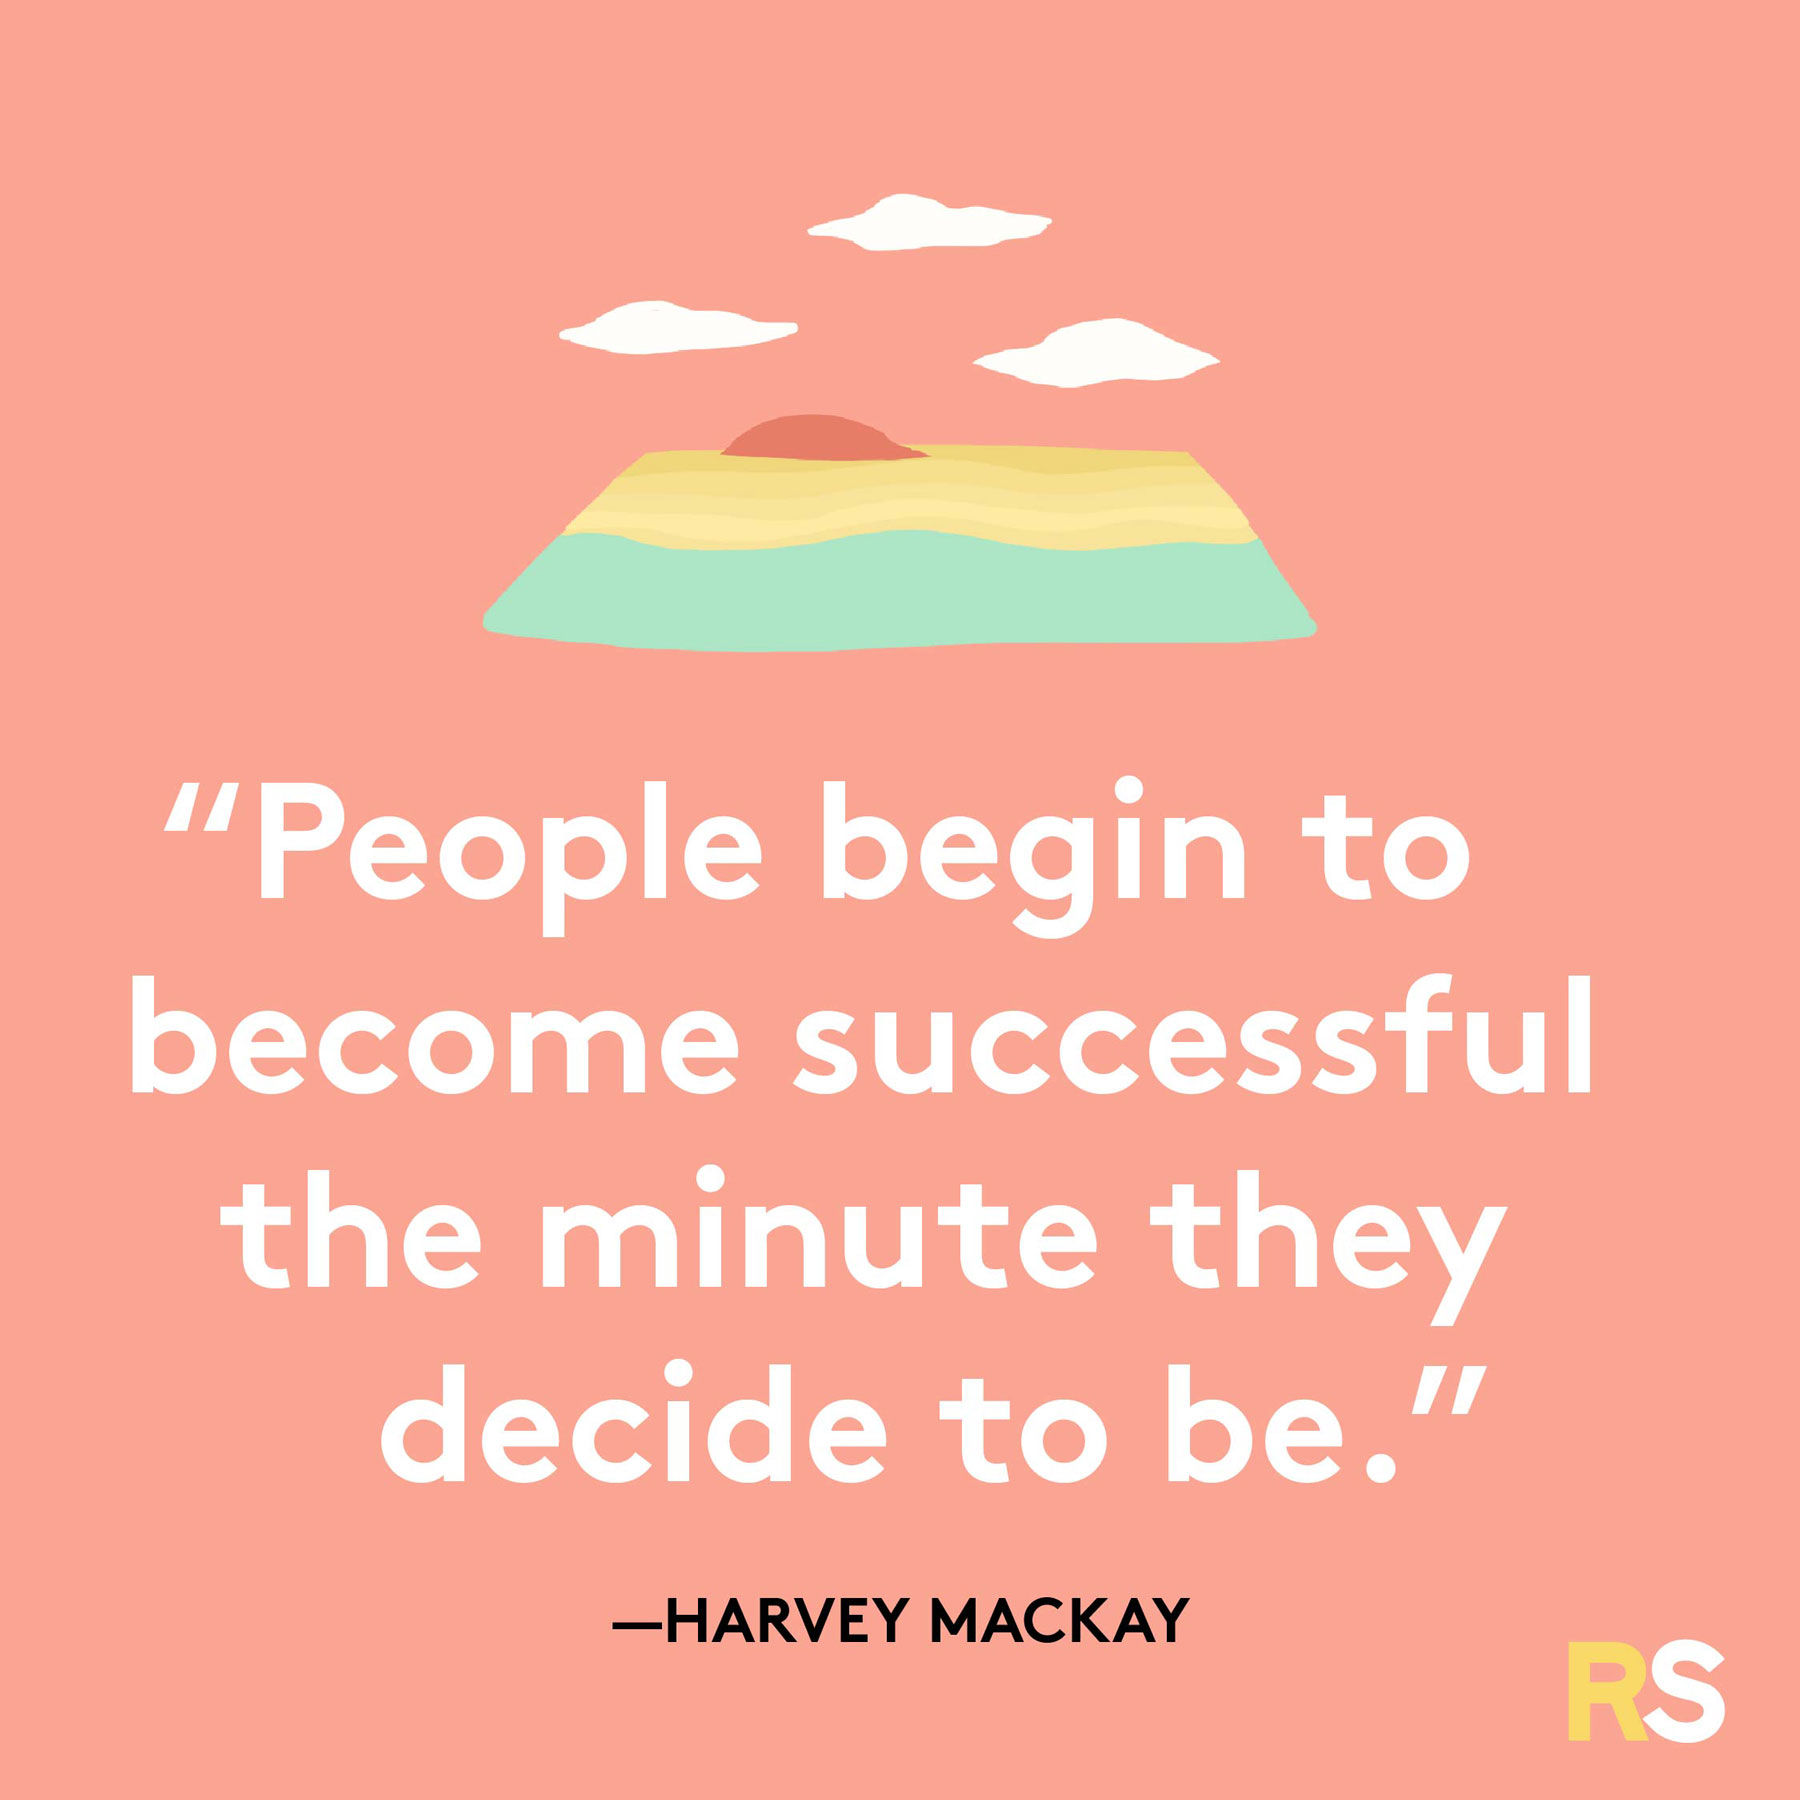 Positive motivating quotes, captions, messages – Harvey Mackay quote